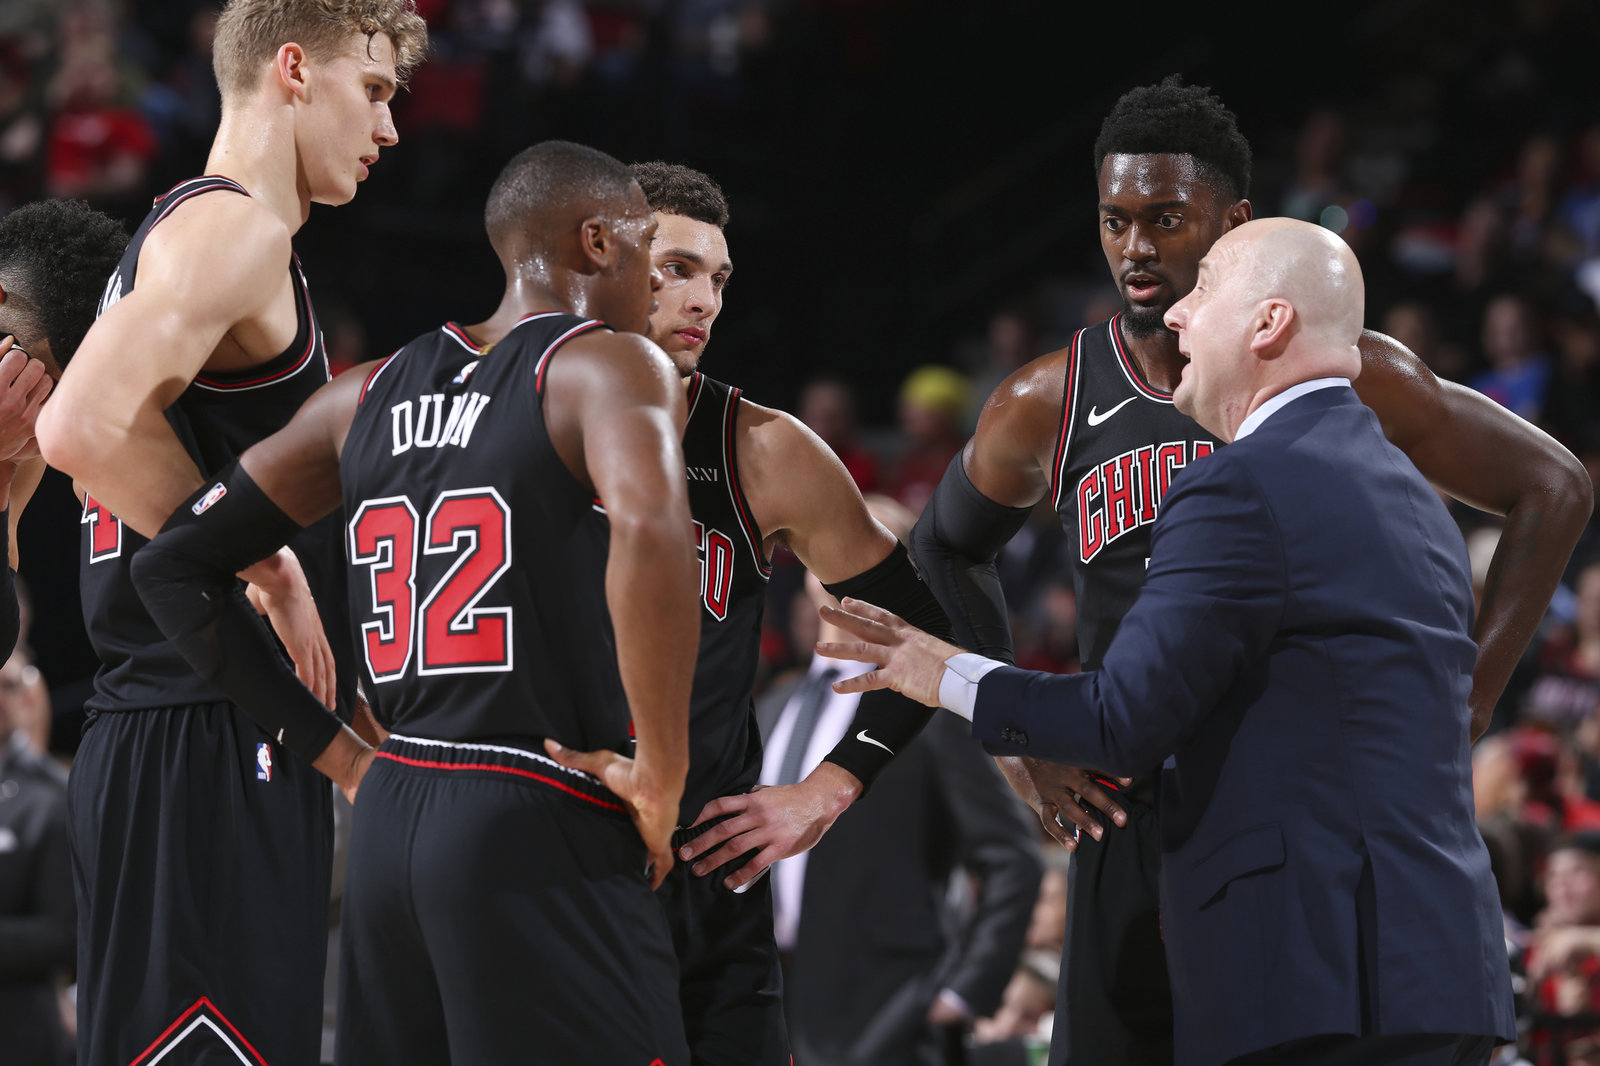 Chicago Bulls huddle during team timeout.